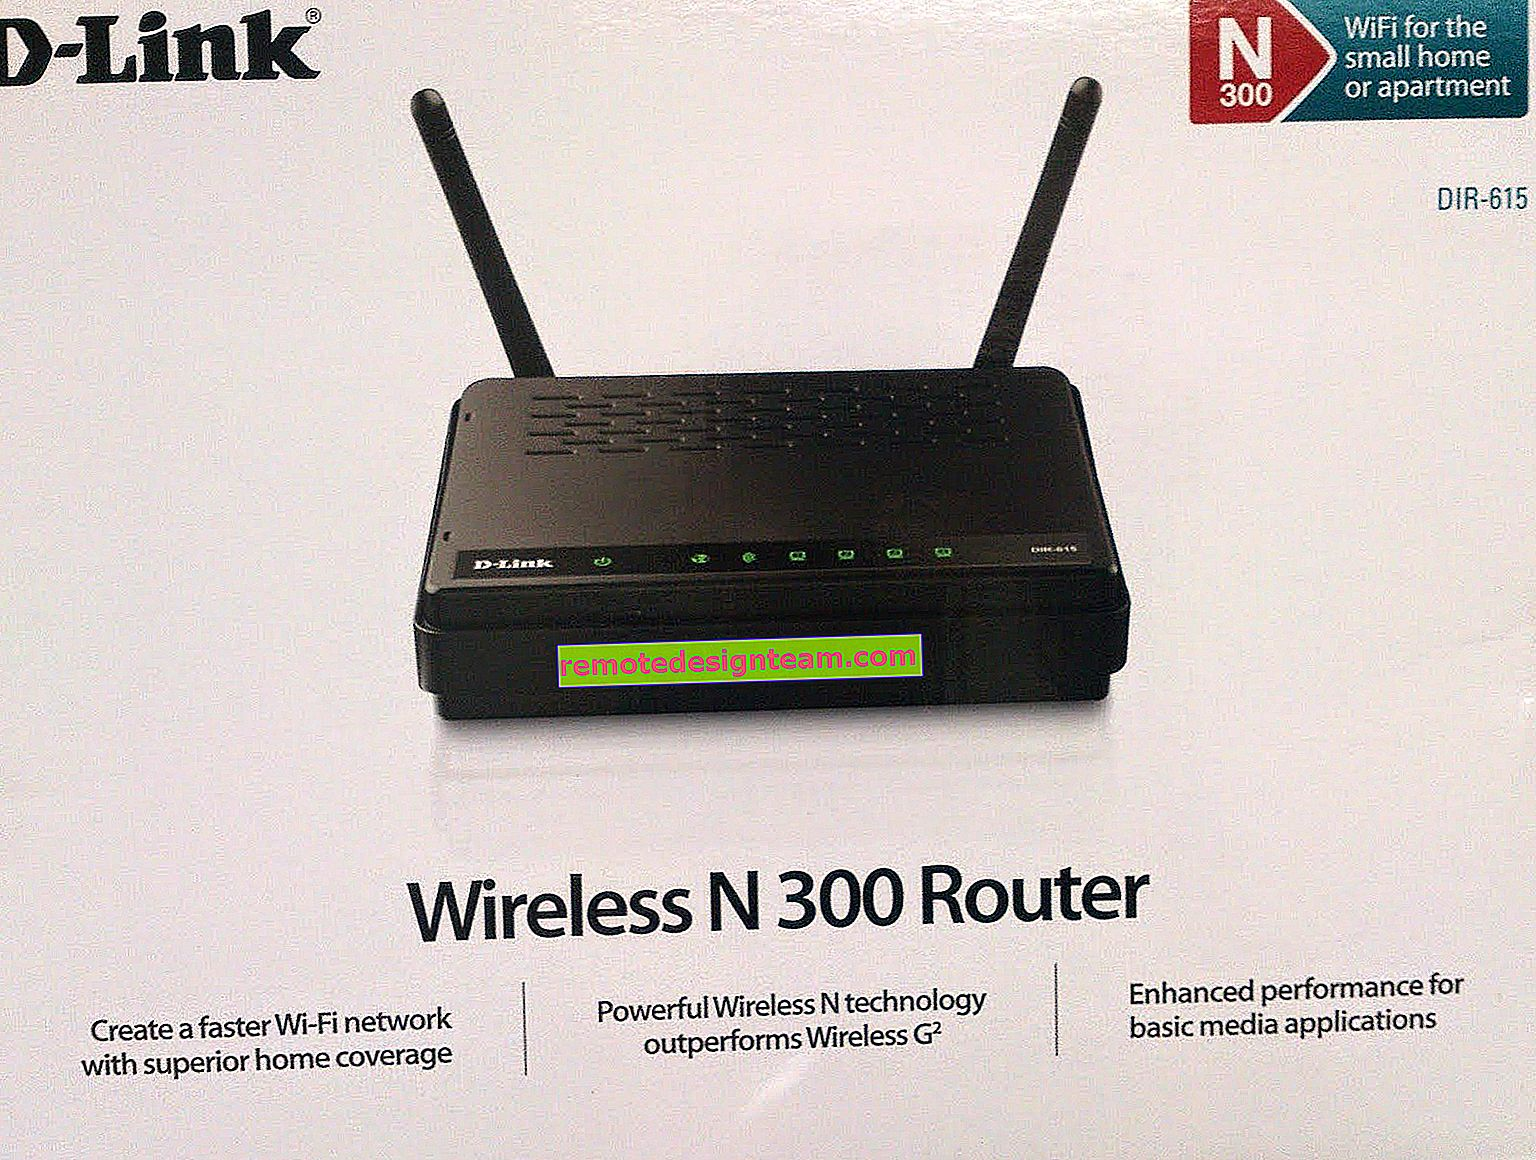 Le routeur ne distribue pas Internet via Wi-Fi. Que faire?